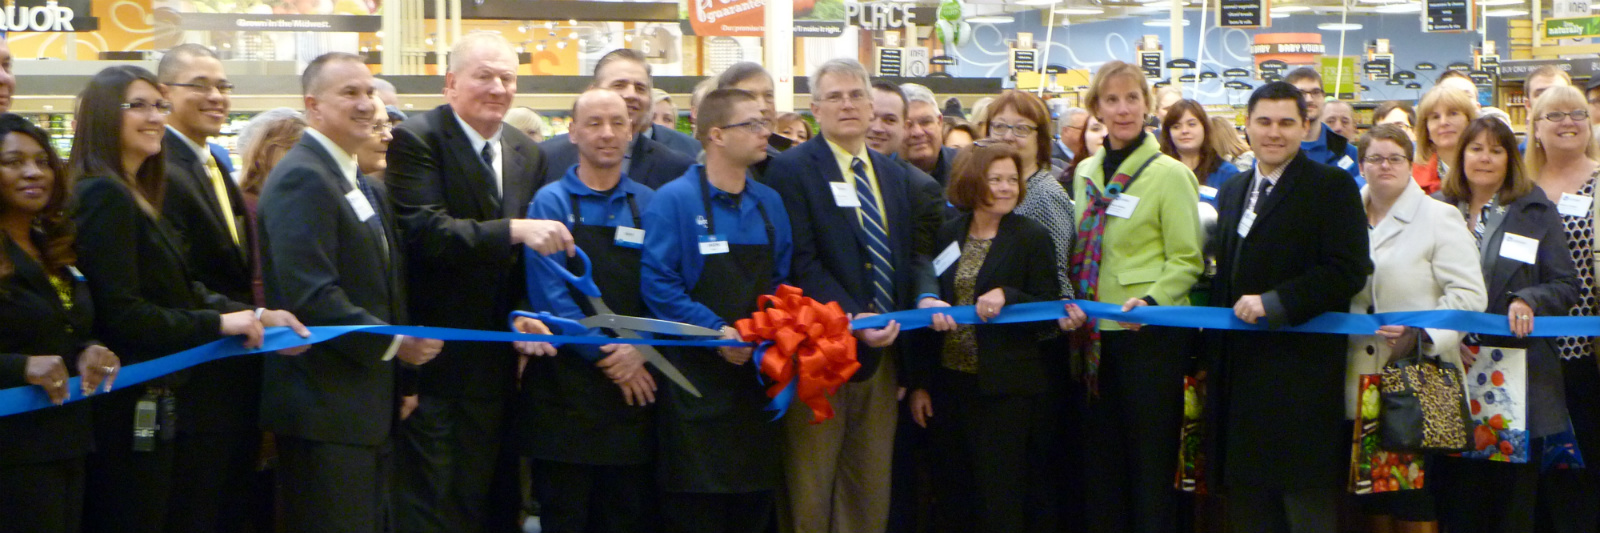 Kroger-Ribbon-Cutting.jpg